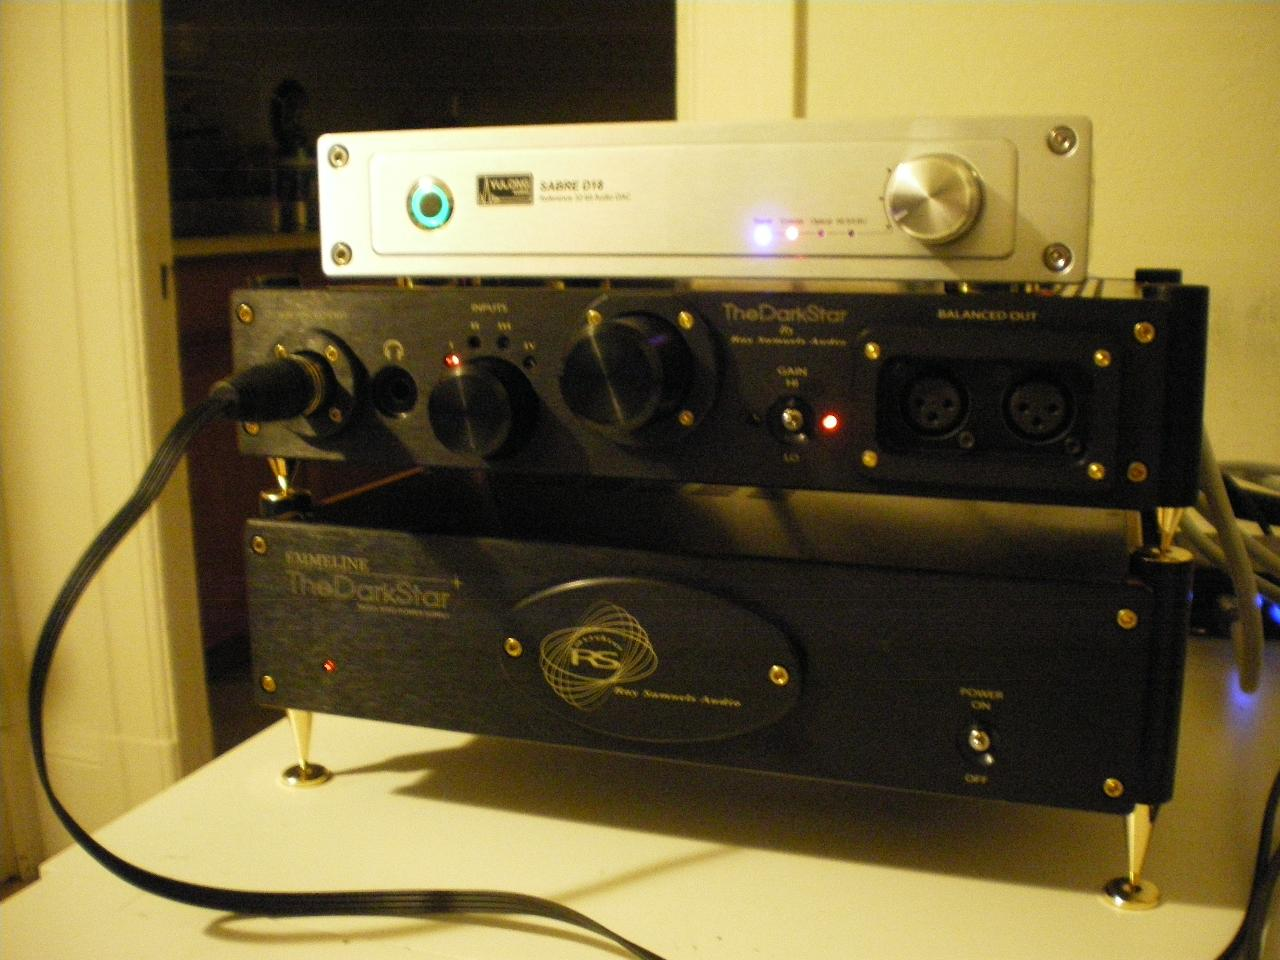 RSA the 'Dark Star' Headphone Amplifier, and Yulong Sabre D-18 DAC.